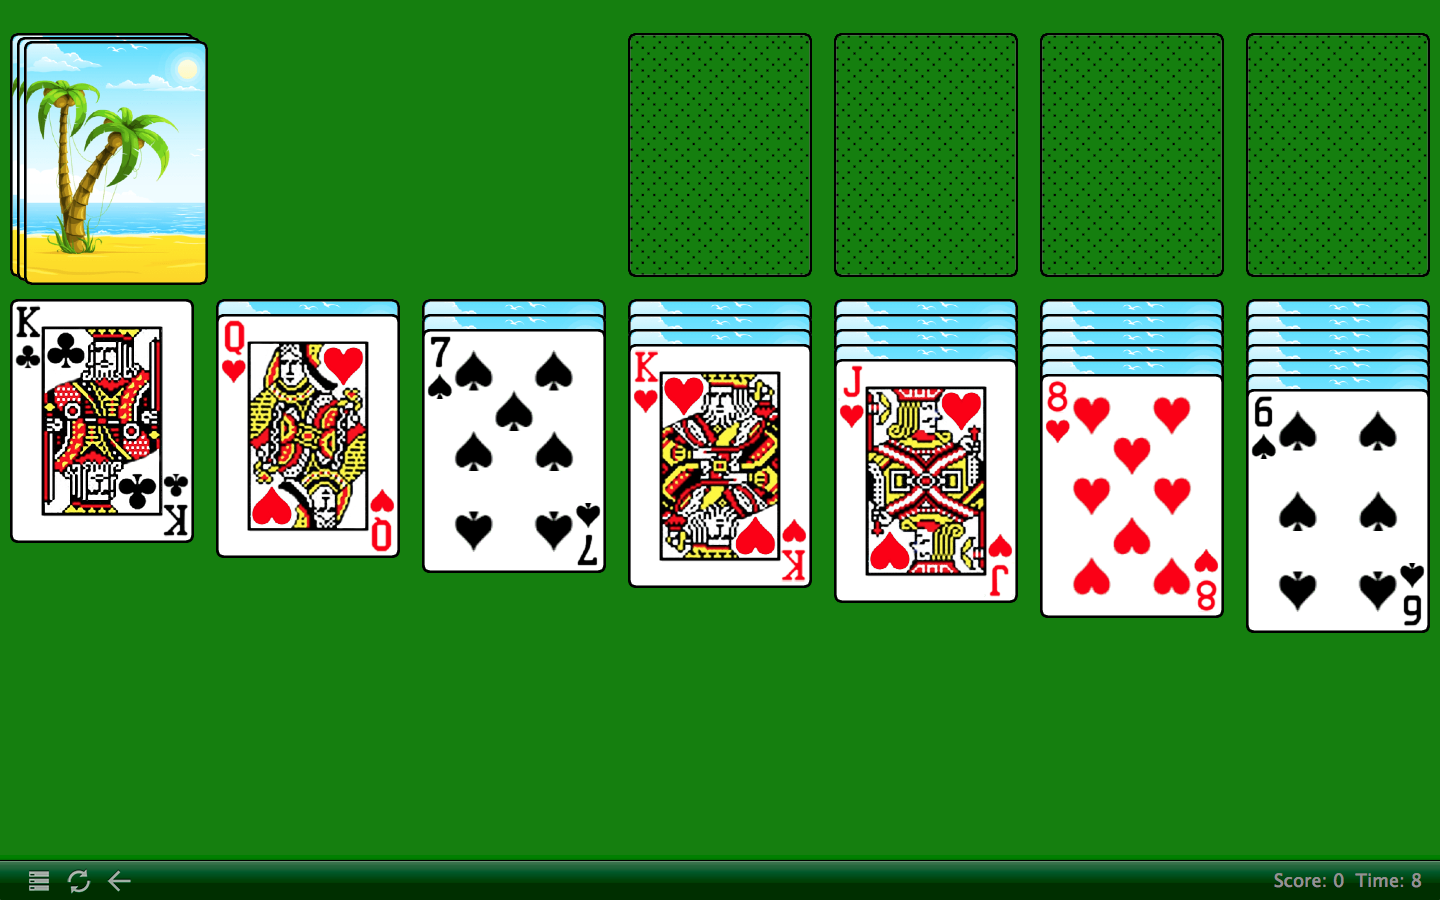 Freecell Solitaire Green Felt